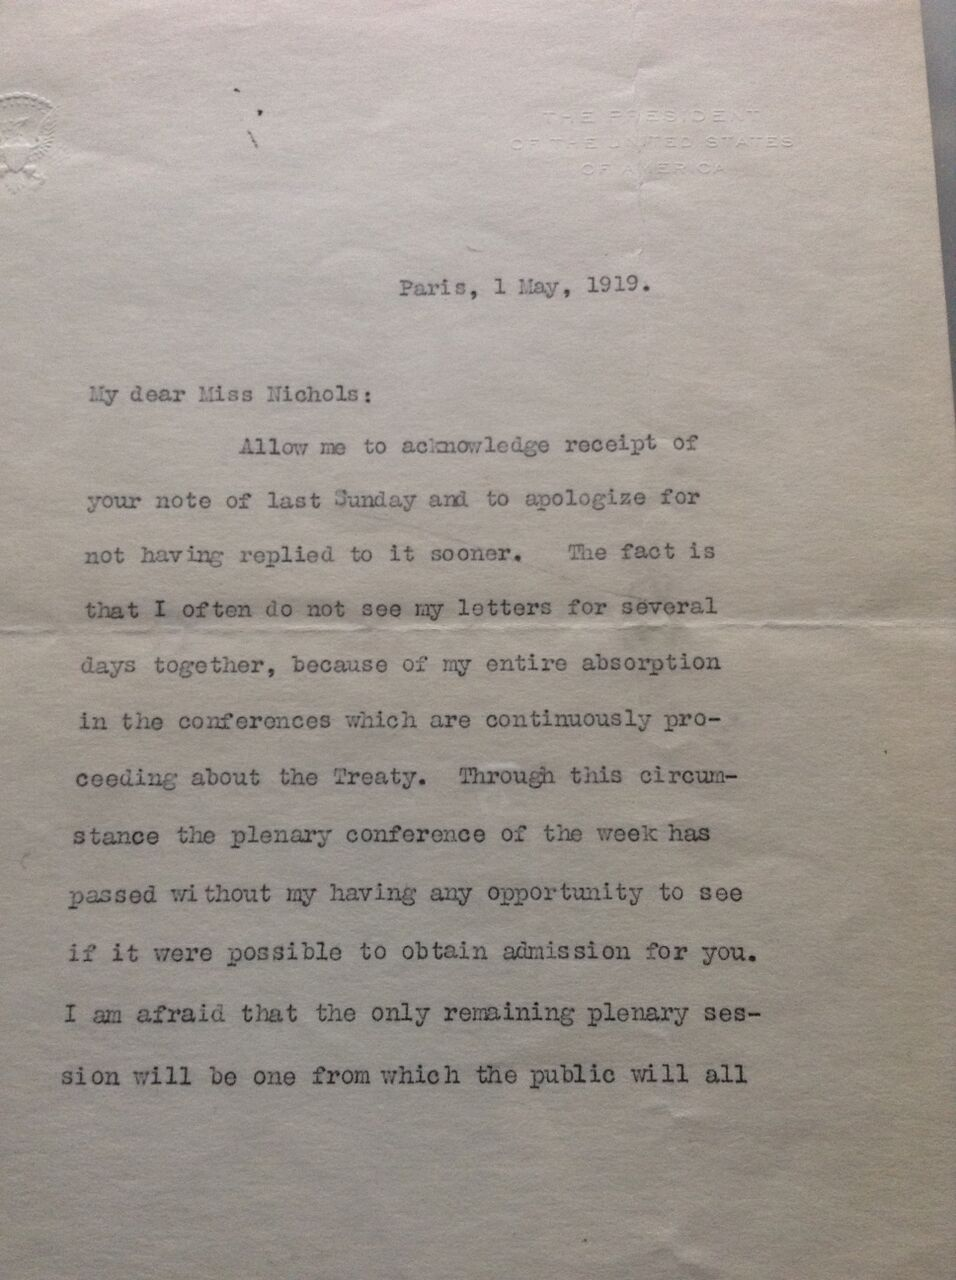 Letter from President Wilson to Rose Nichols